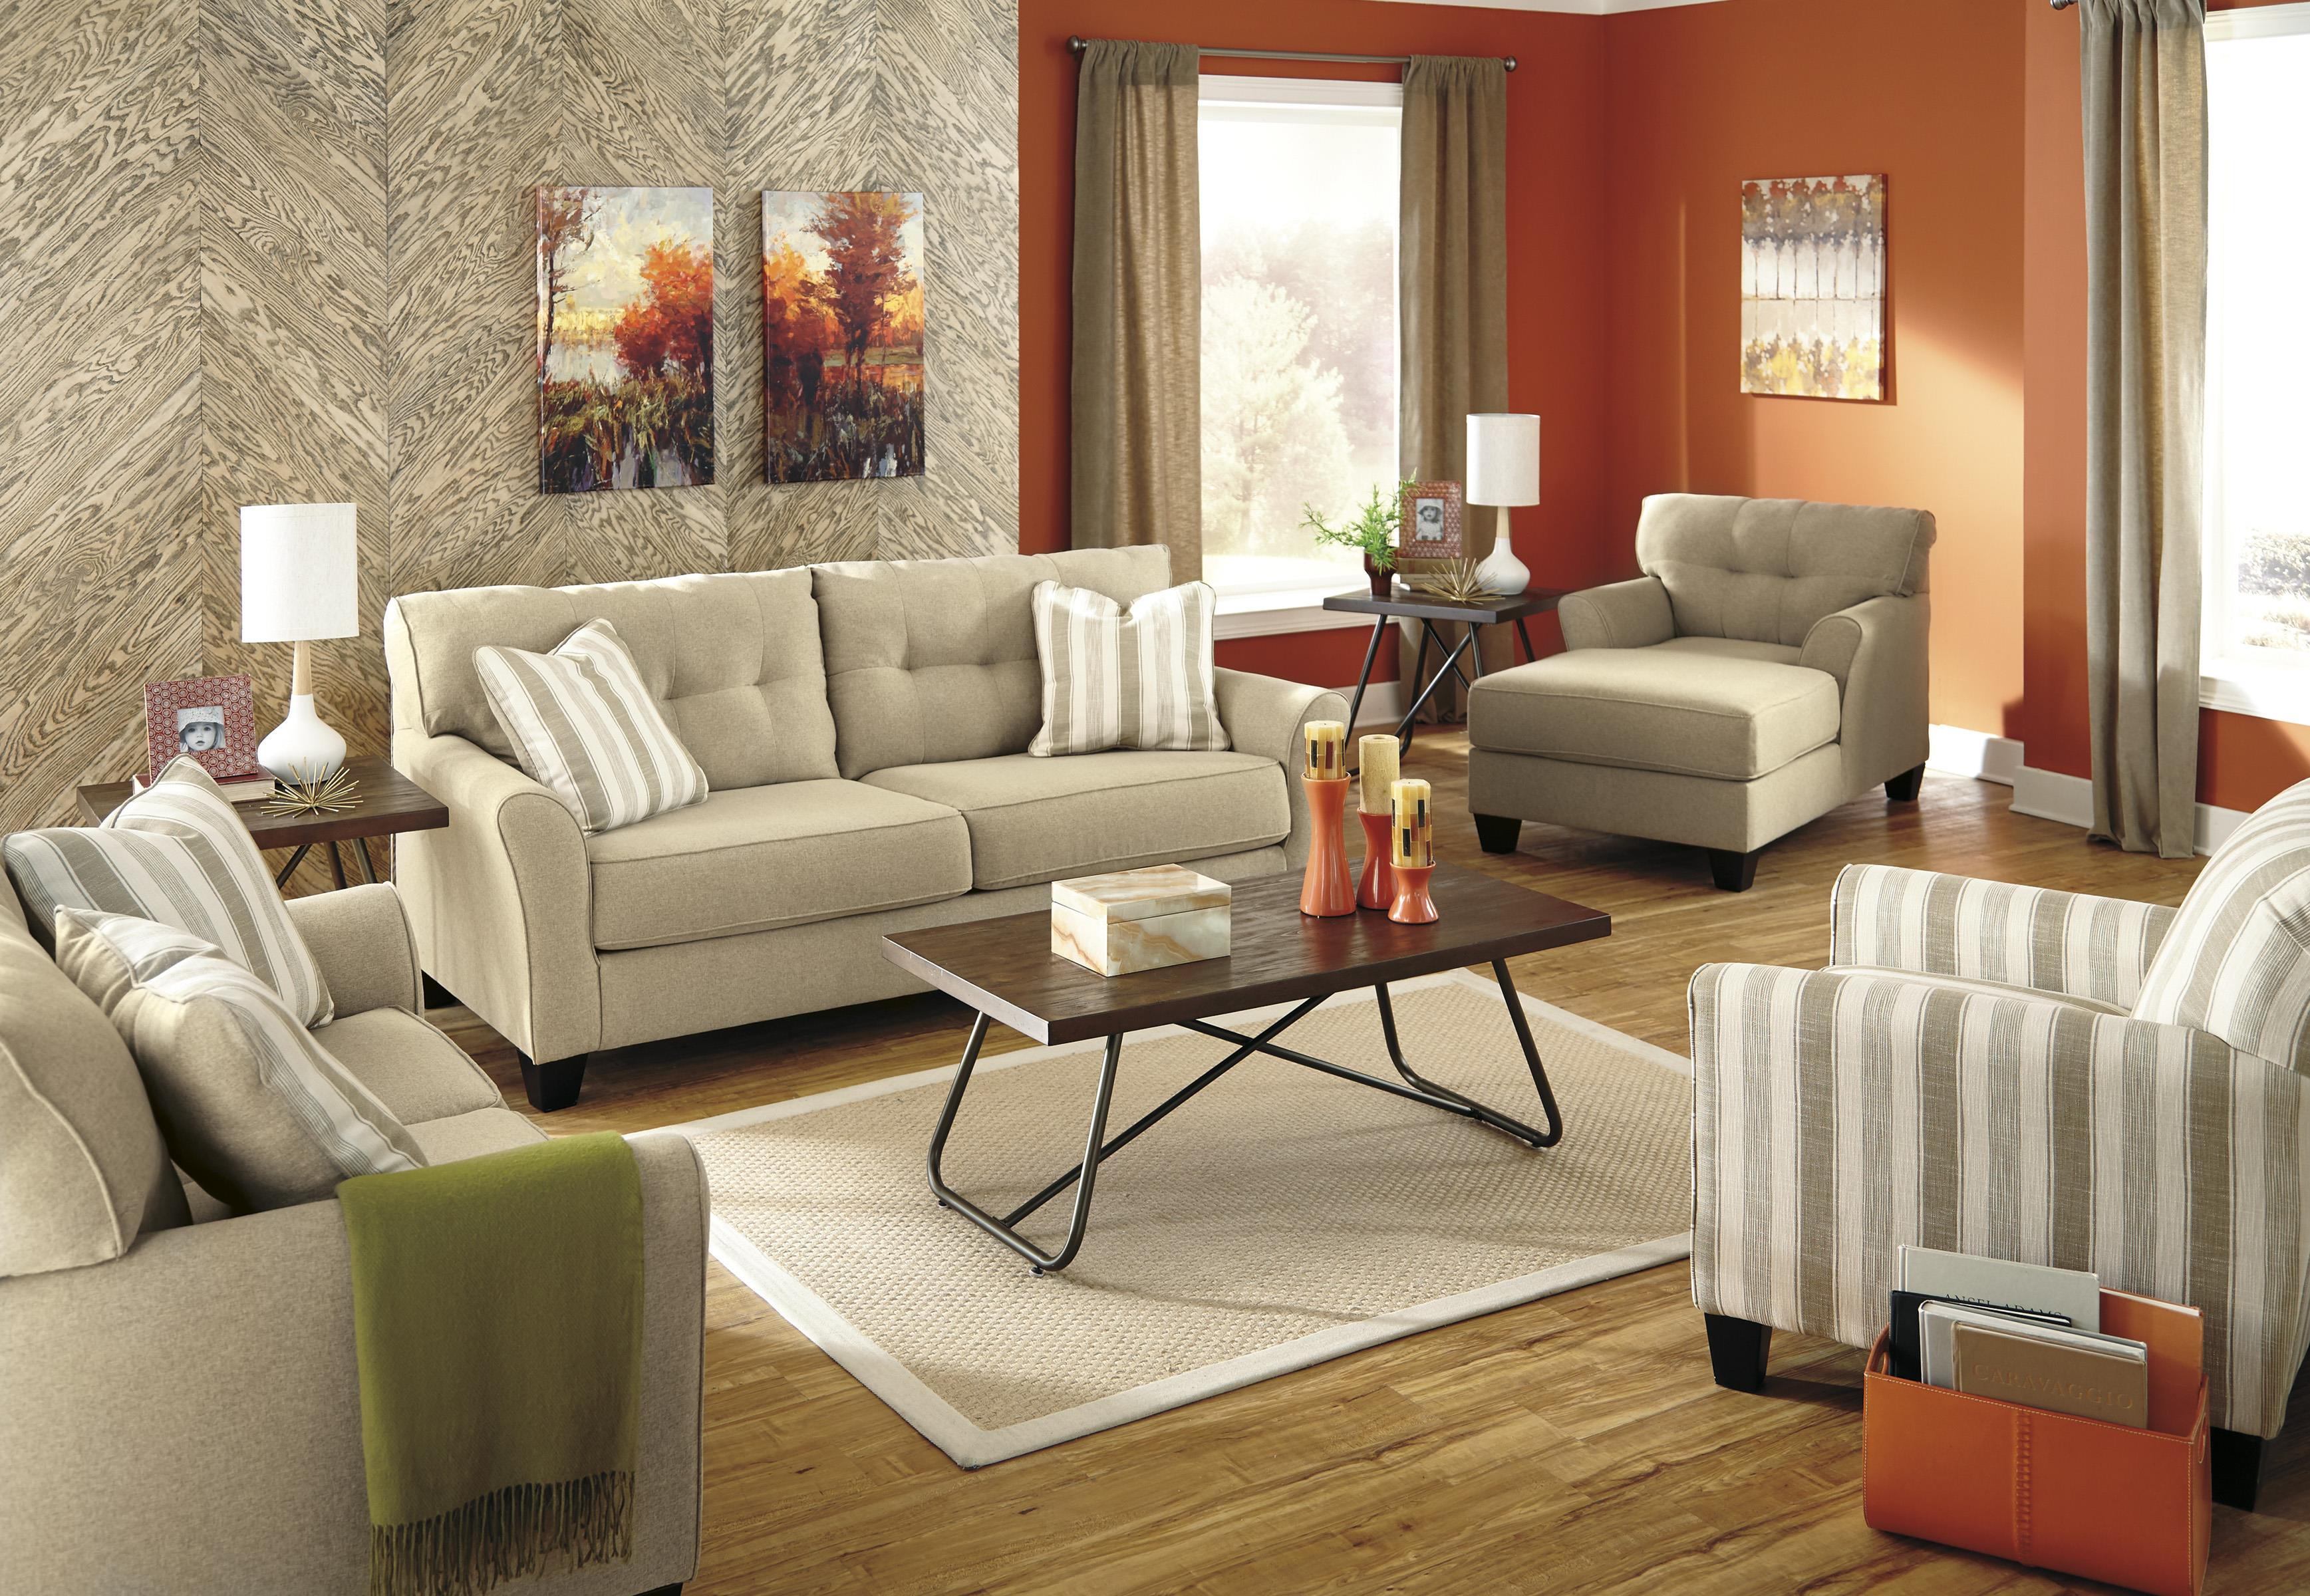 Benchcraft Laryn Stationary Living Room Group - Item Number: 51902 Living Room Group 5